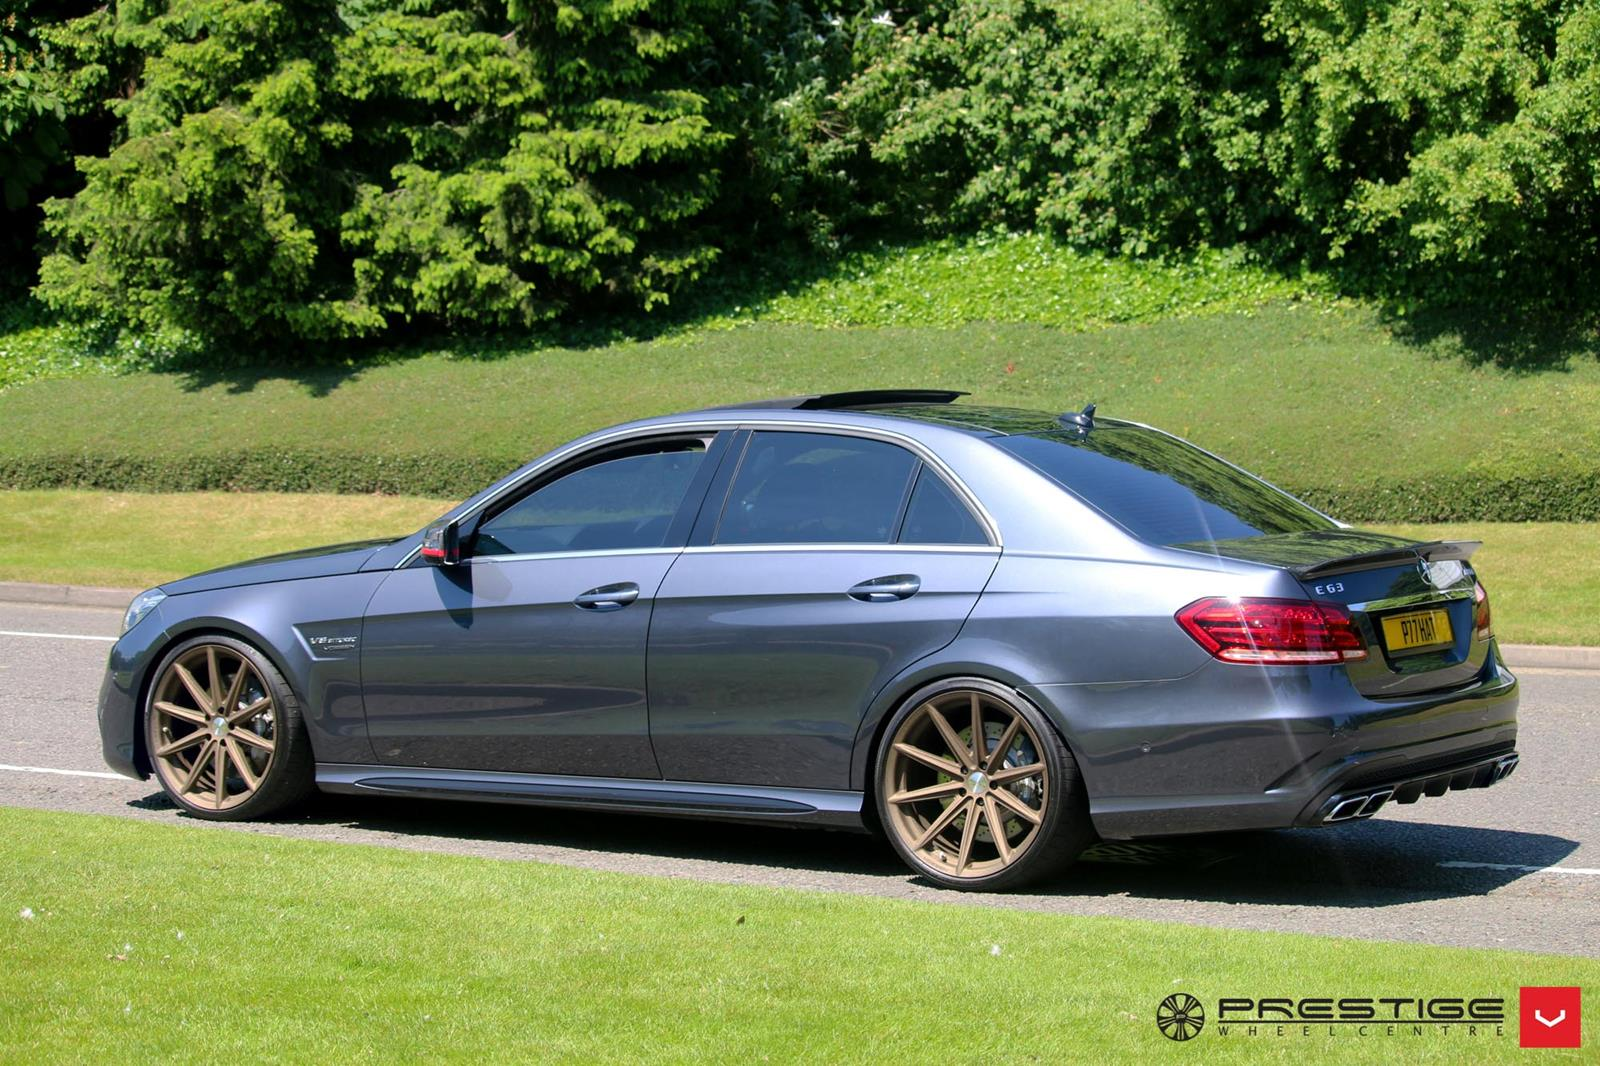 Mercedes benz w212 e63 amg on vossen vfs10 wheels benztuning for Mercedes benz wheel